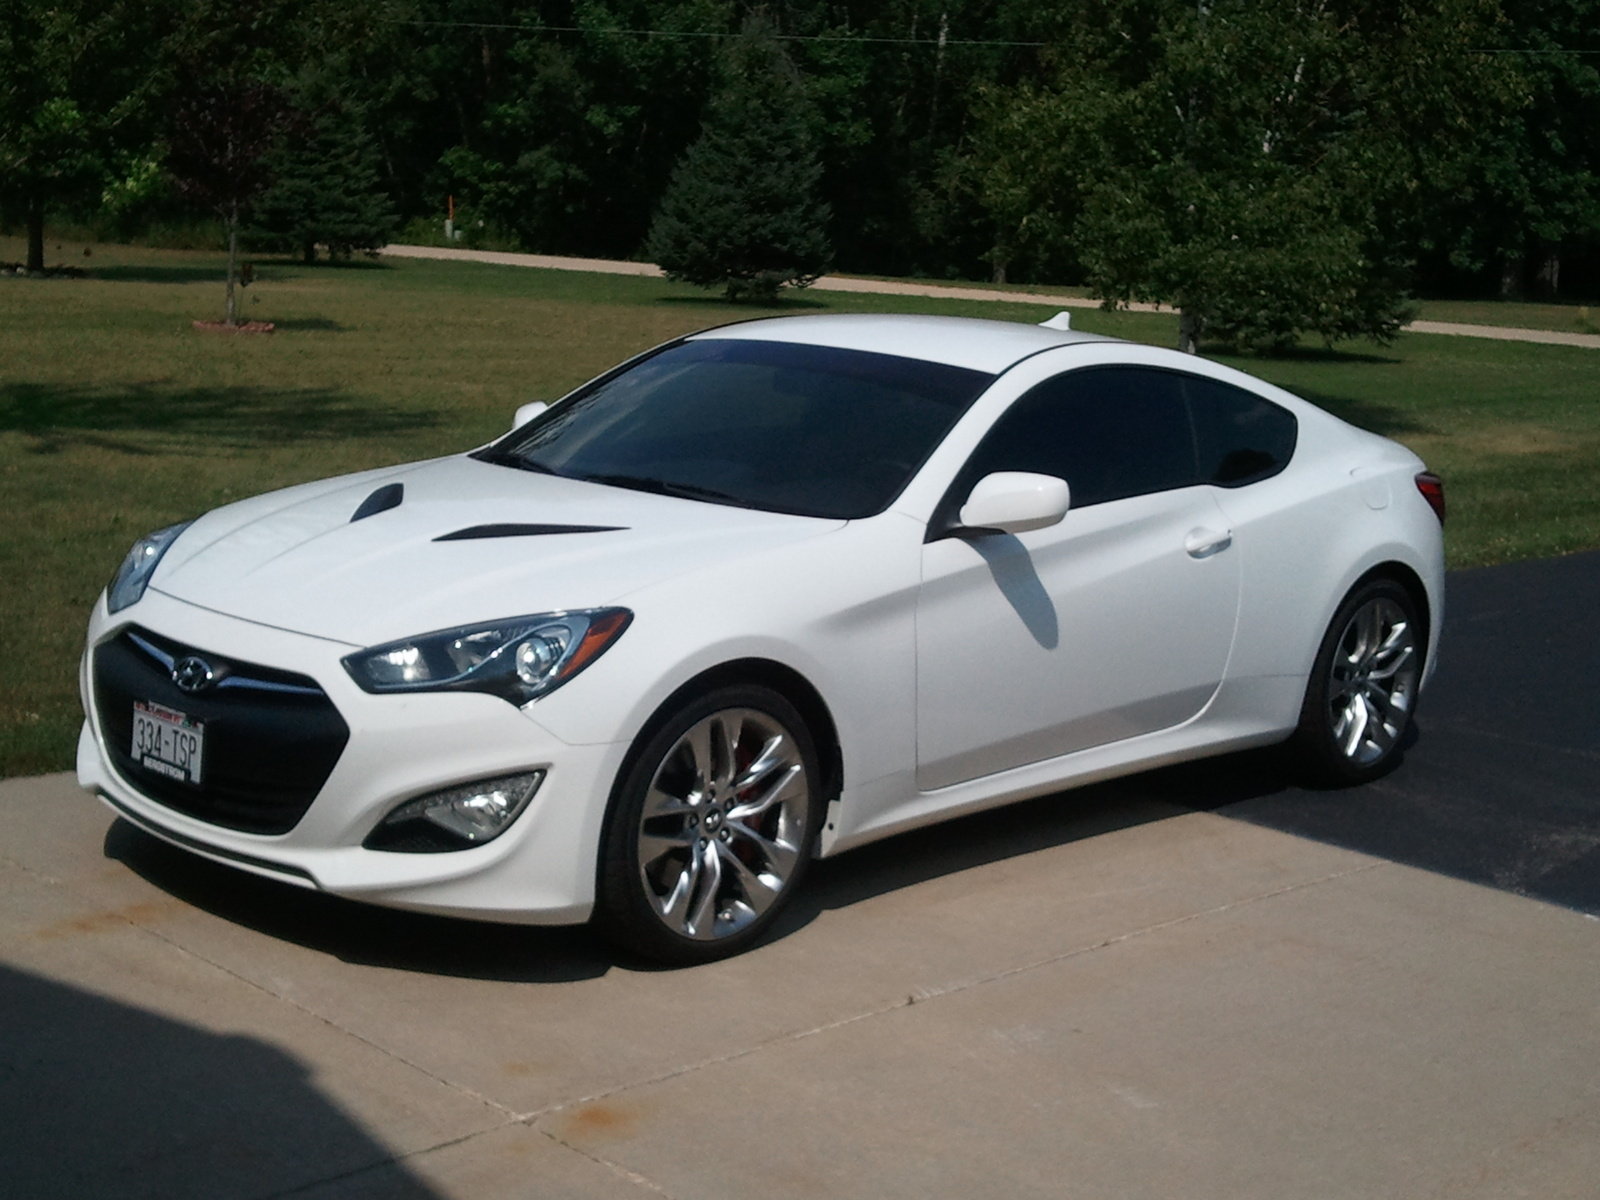 hyundai genesis coupe wallpaper 1600x1200 17097. Black Bedroom Furniture Sets. Home Design Ideas